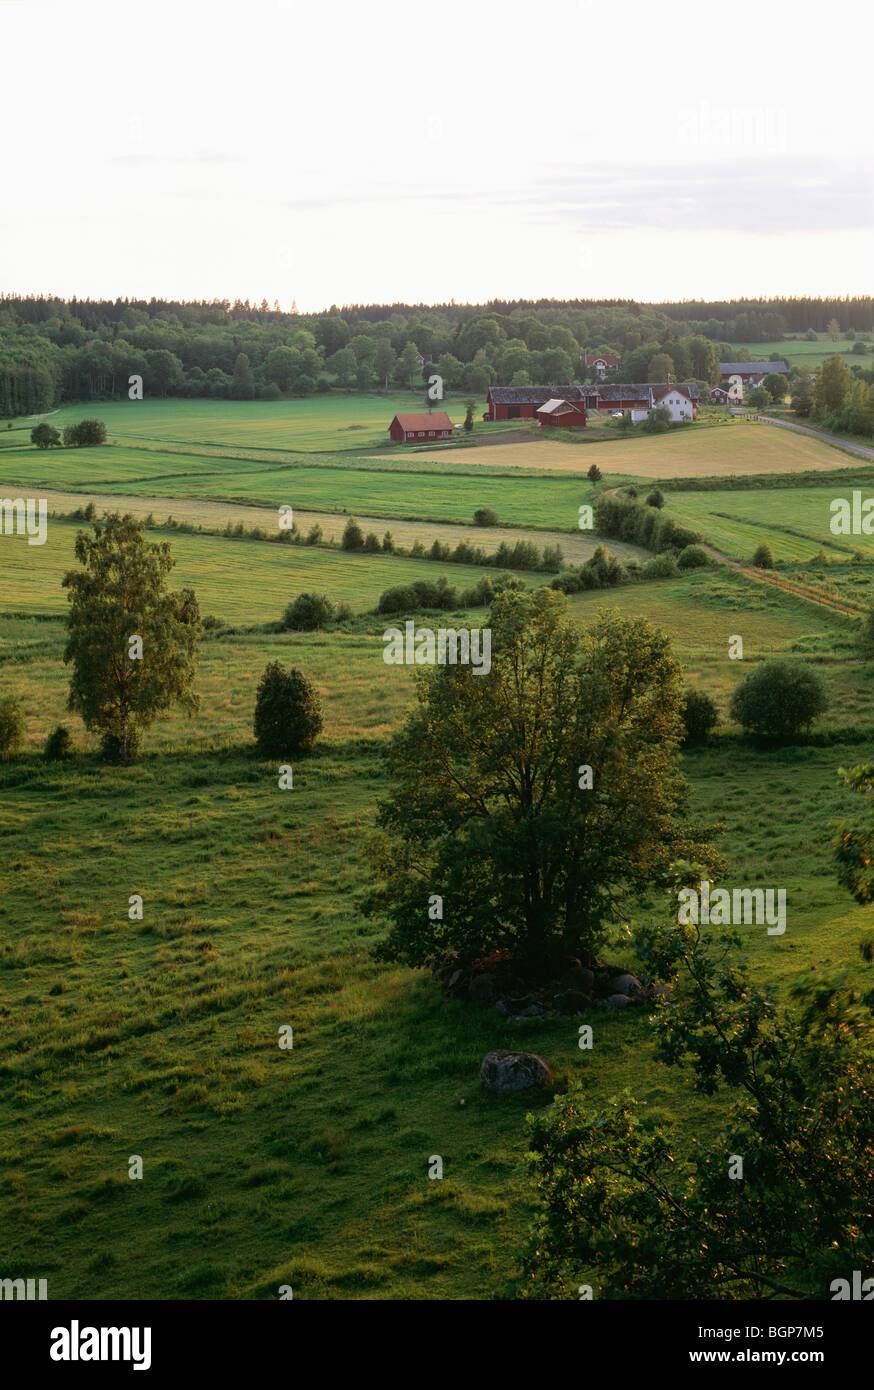 Agricultural district, Smaland, Sweden. - Stock Image